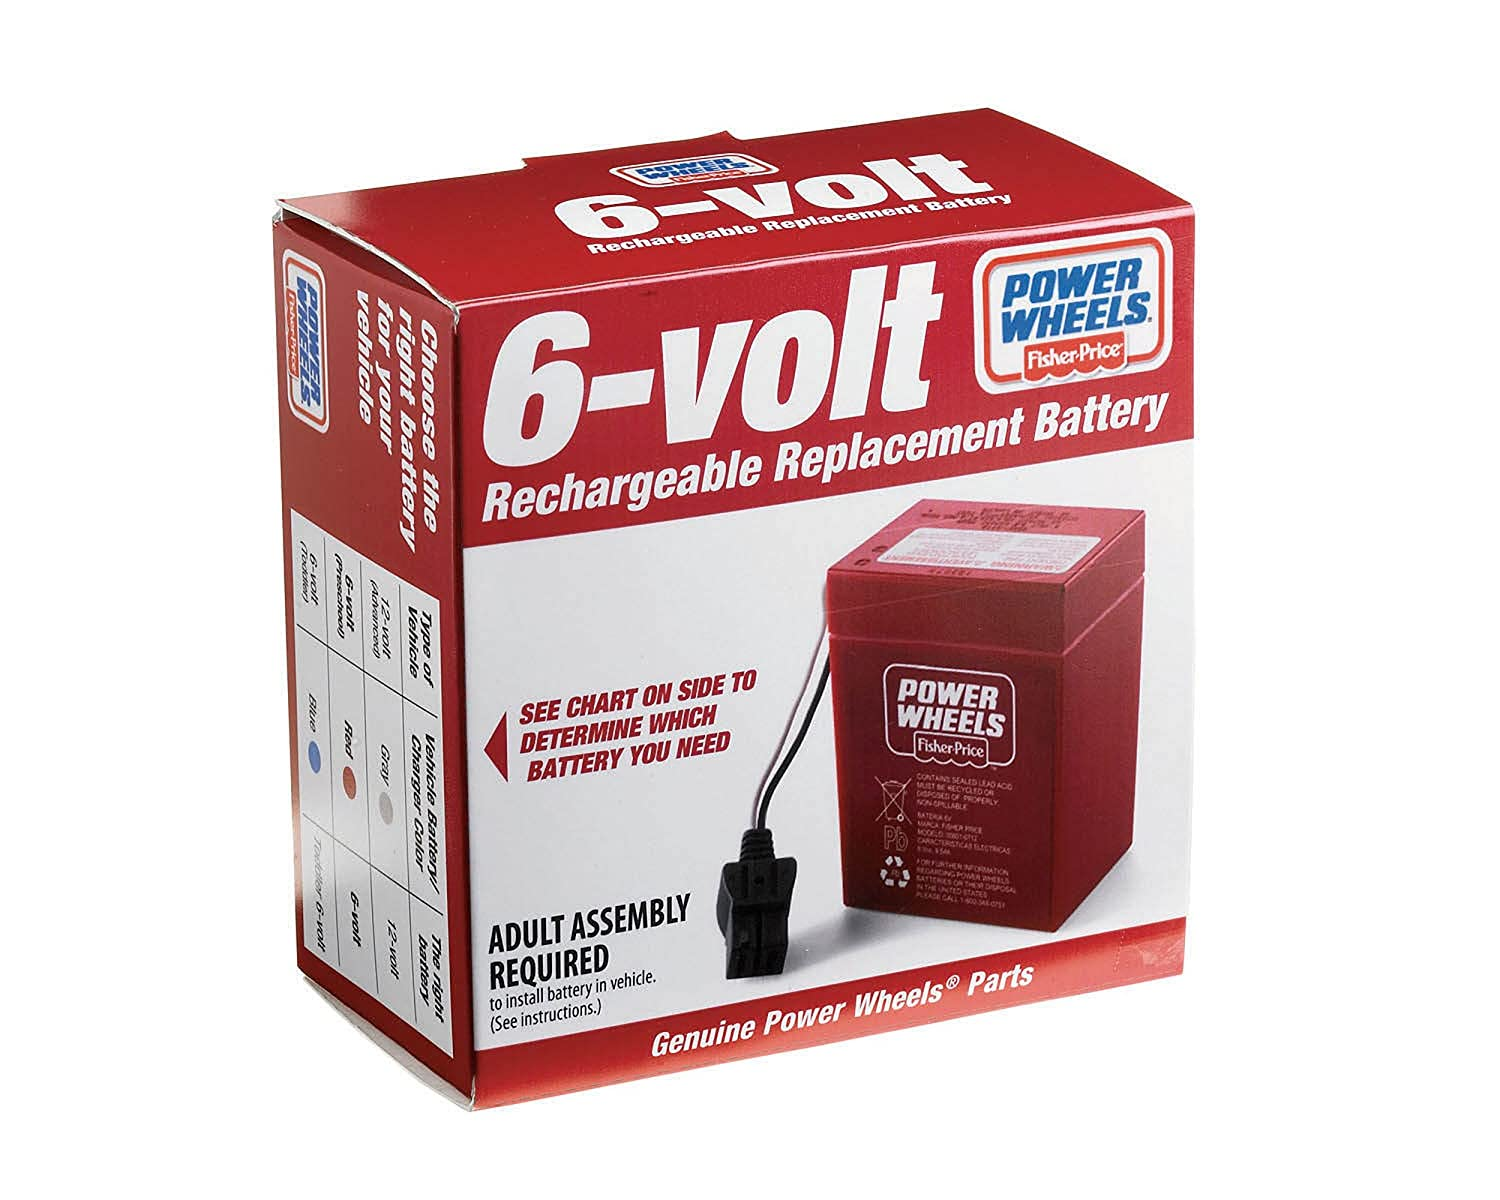 Power Wheels 6 Volt Rechargeable Replacement Battery Car Batteries In Series Also Wiring Toys Games